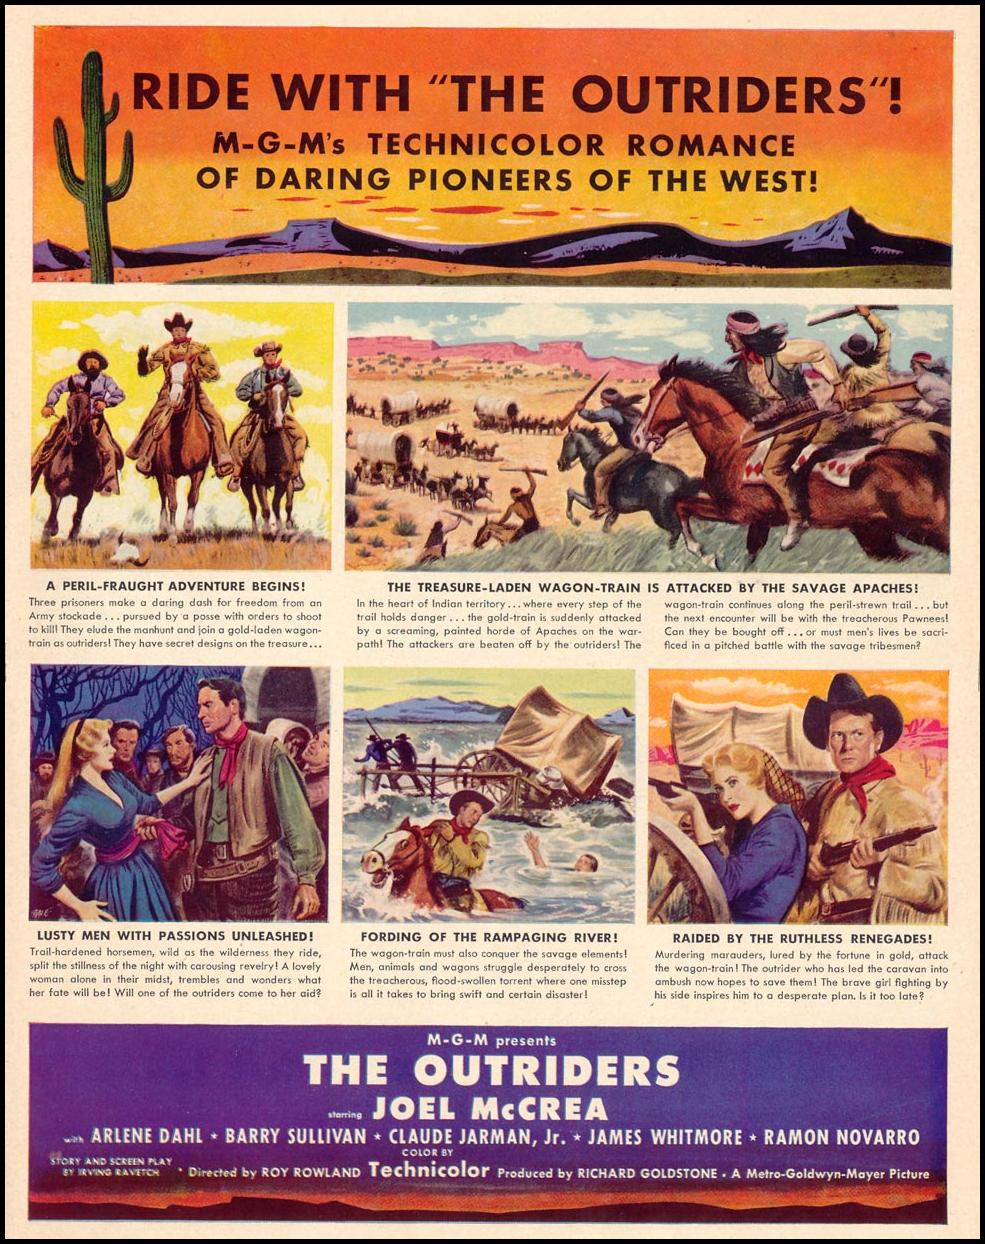 THE OUTRIDERS LIFE 04/17/1950 p. 37